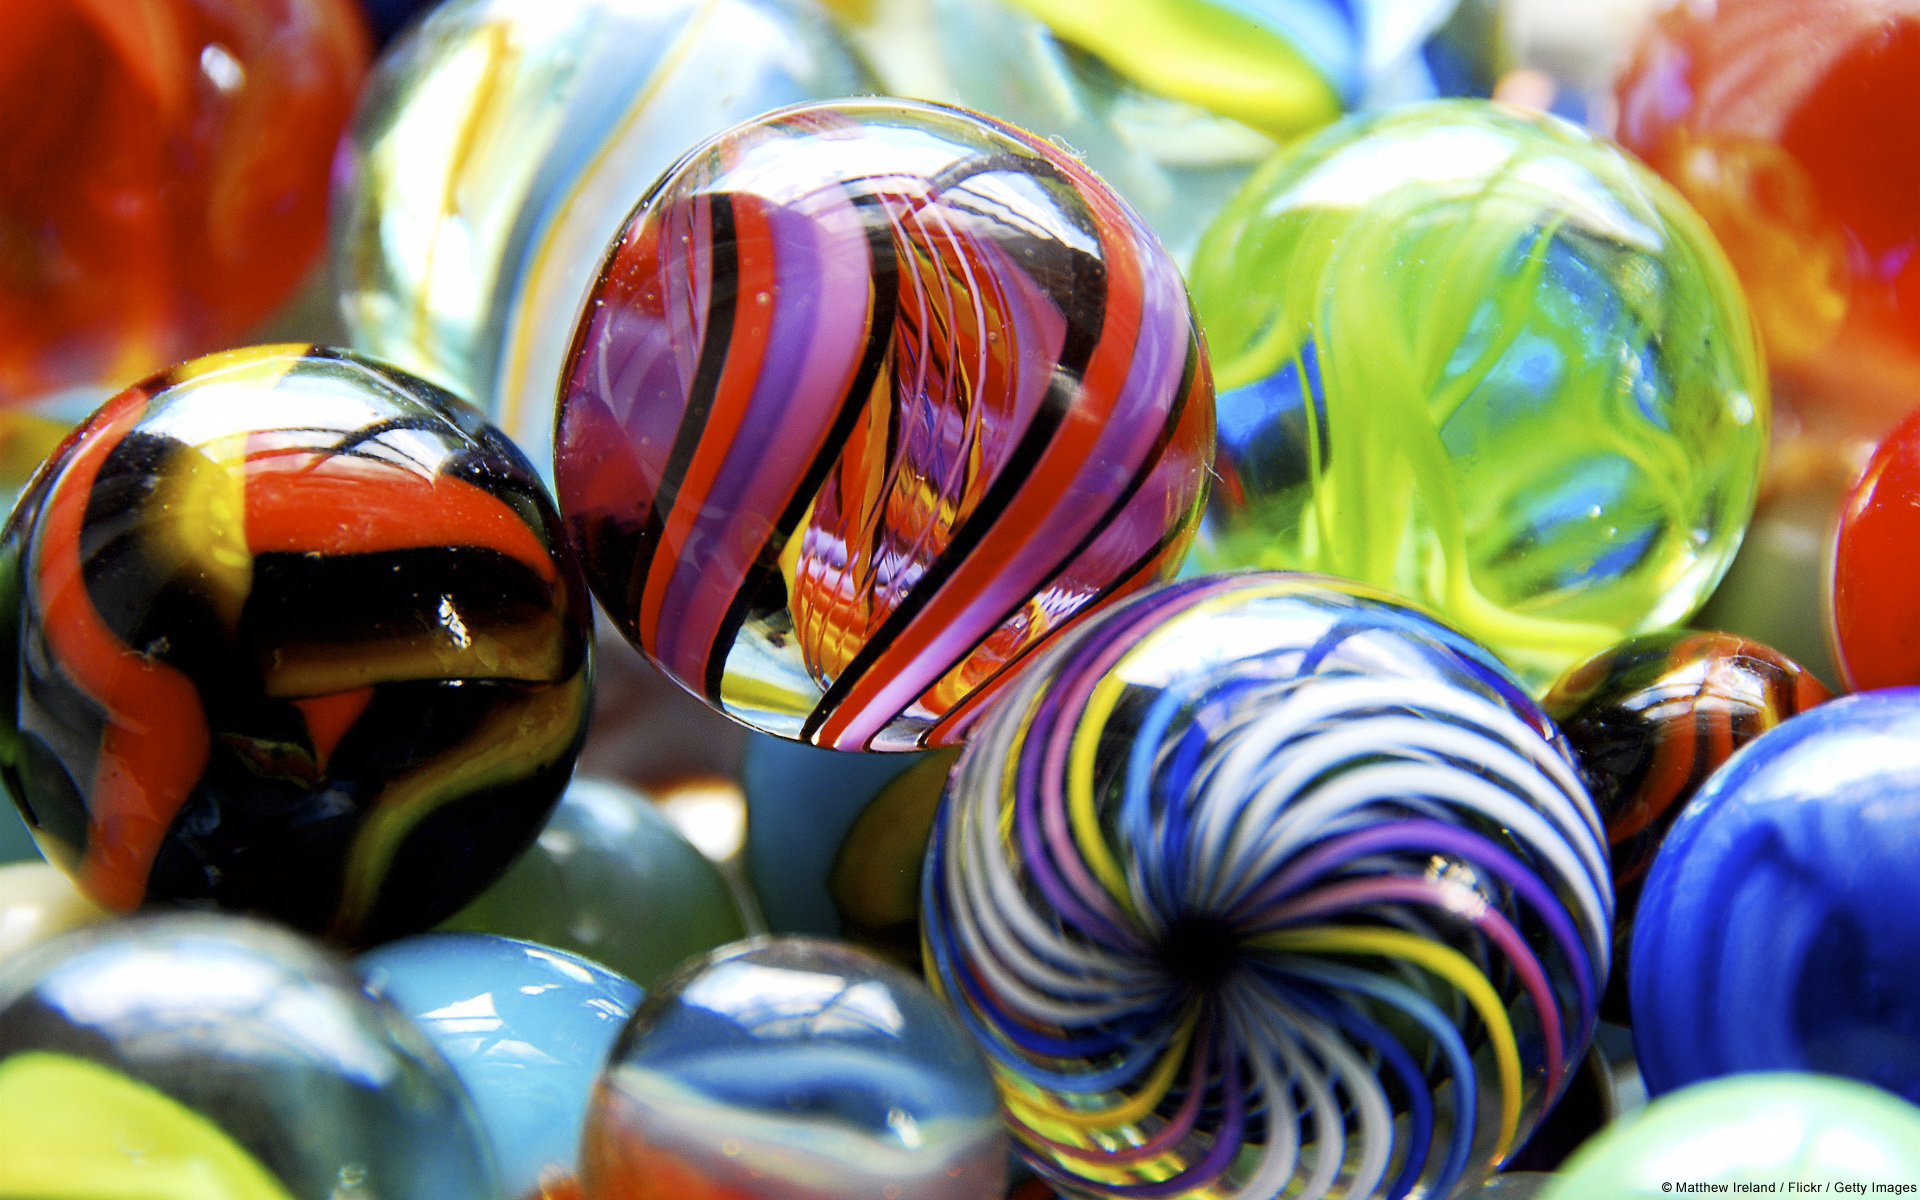 Close-up shot of brightly colored glass marbles of varying designs, including classic cat's eye, swirling rainbow patterns, and twisting, psychedelic shapes and colors